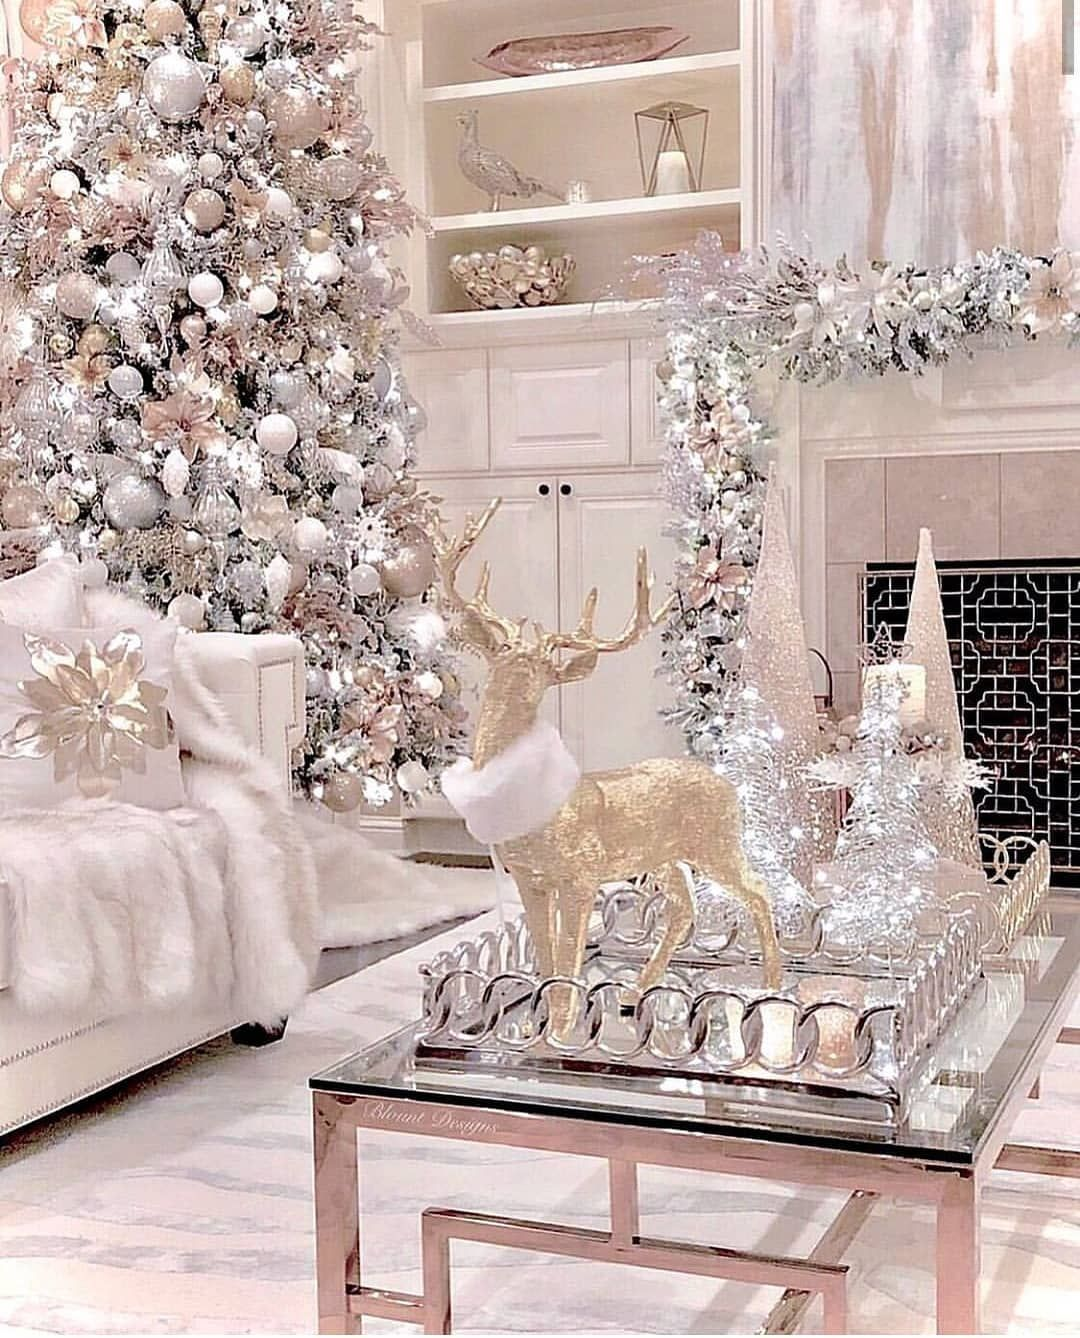 Cozy Winter Homedecor: Holly Jolly Christmas On Instagram: It's Beginning To